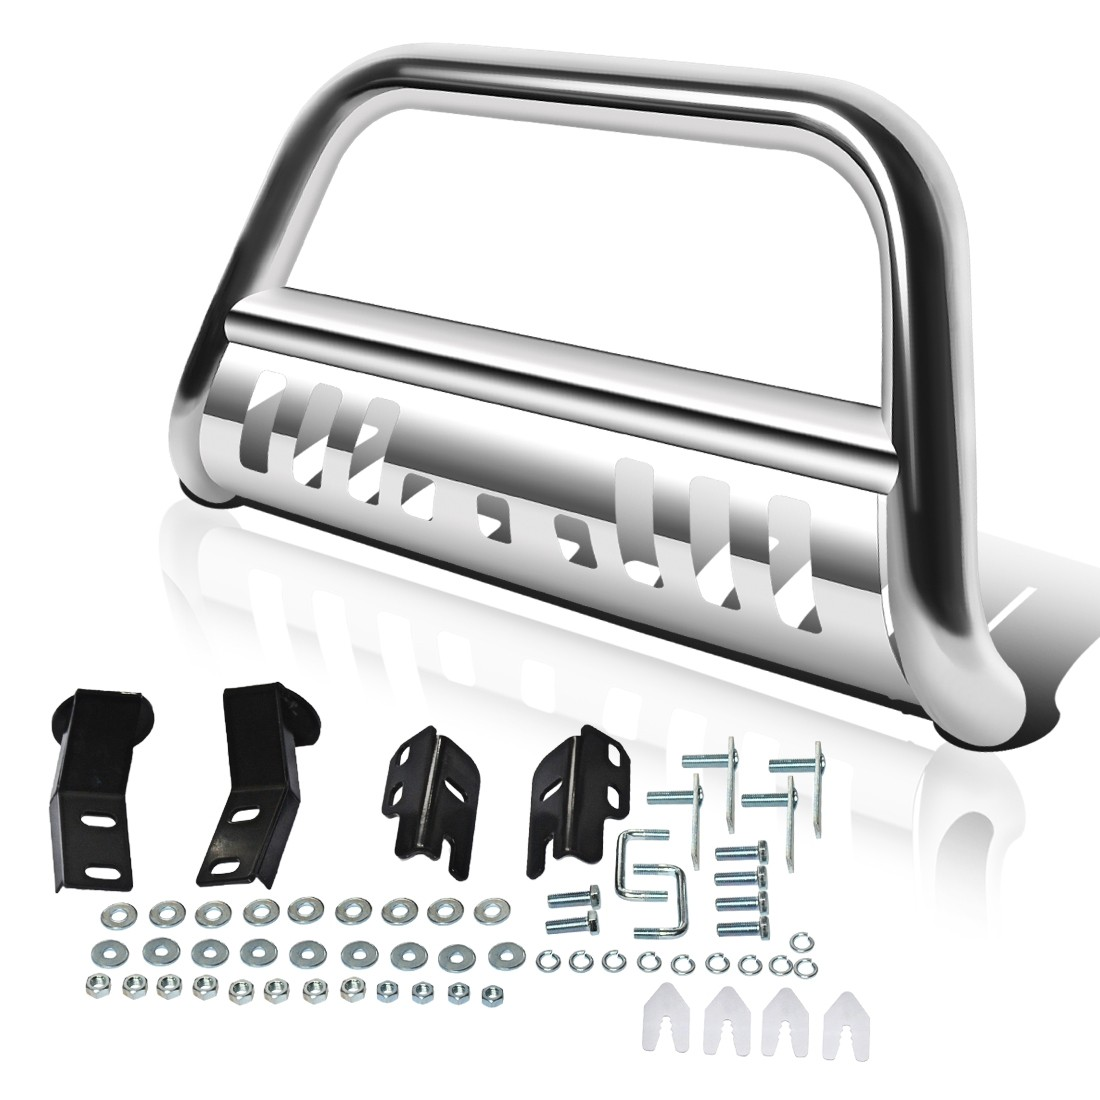 "AUTOSAVER88 Bull Bar for 04-18 Ford F150 Stainless Chrome Bull Bar 3"" Push Front Bumper Grill Grille Guard with Skid Plate"